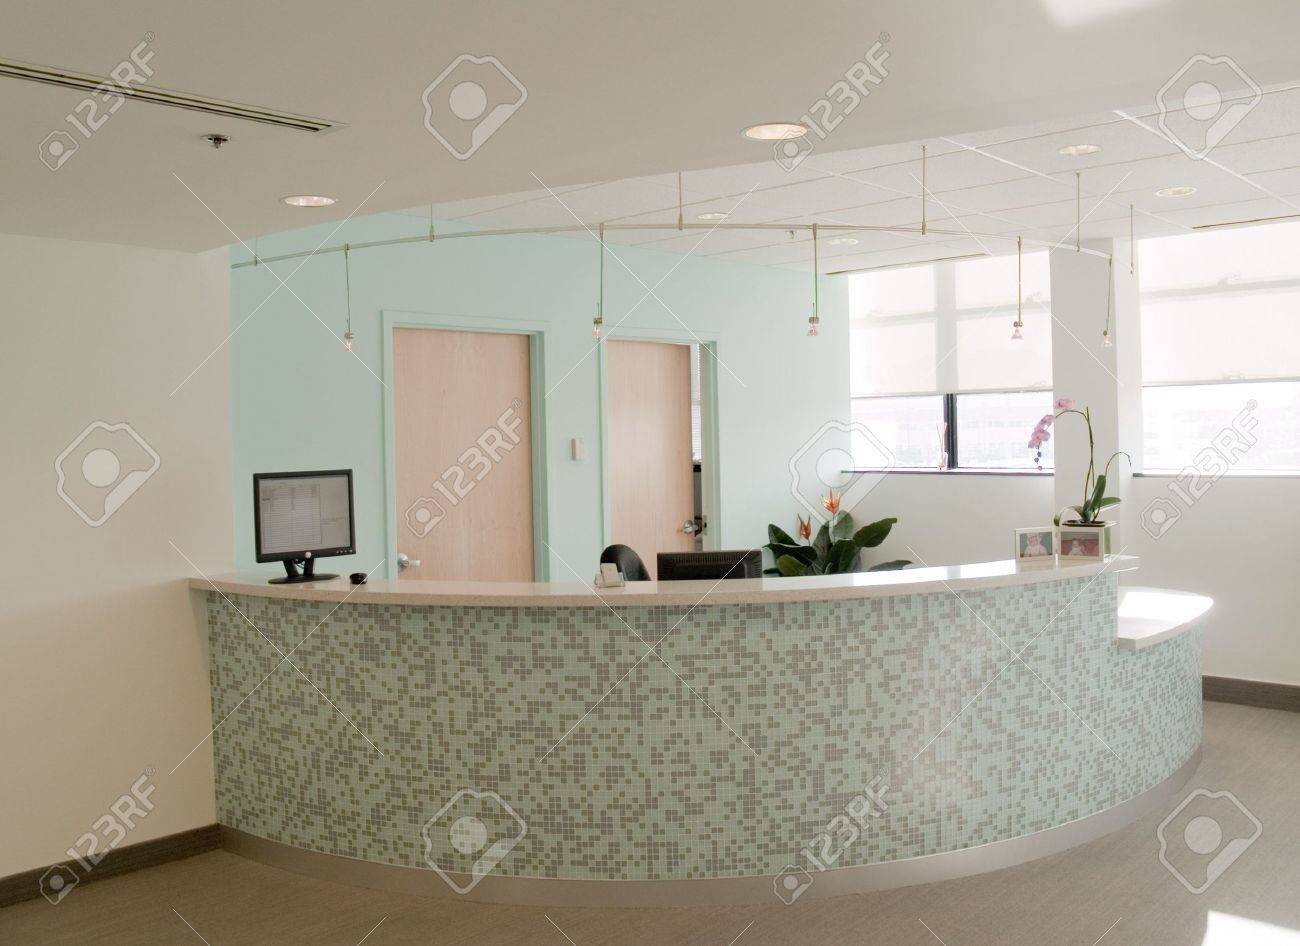 Reception desk in a medical office Stock Photo - 744763